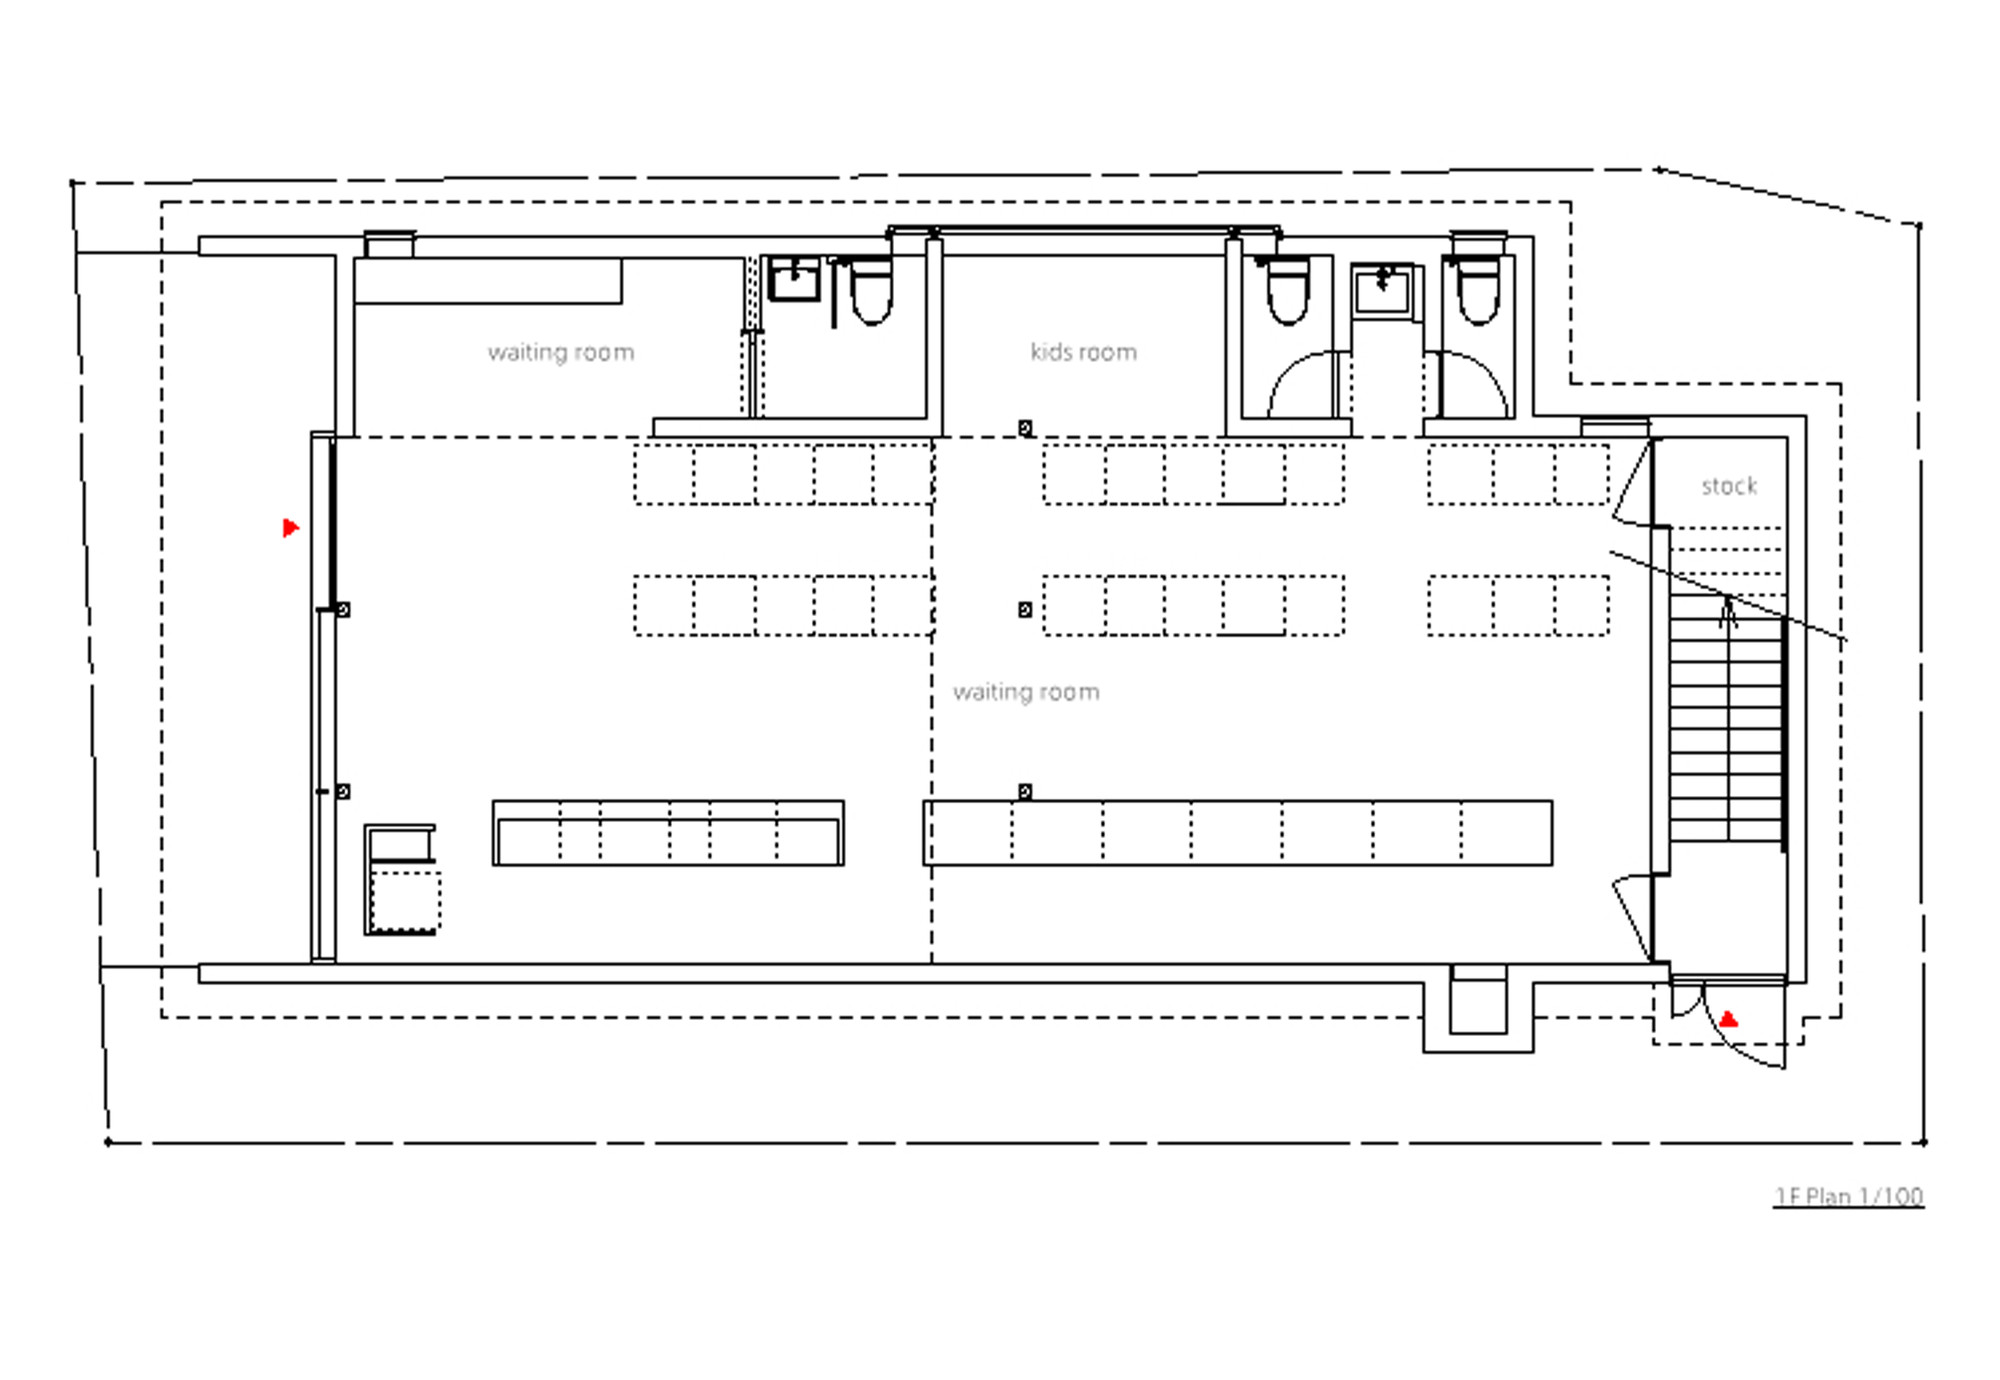 Pharmacy design floor plans gurus floor for Floor plan layout